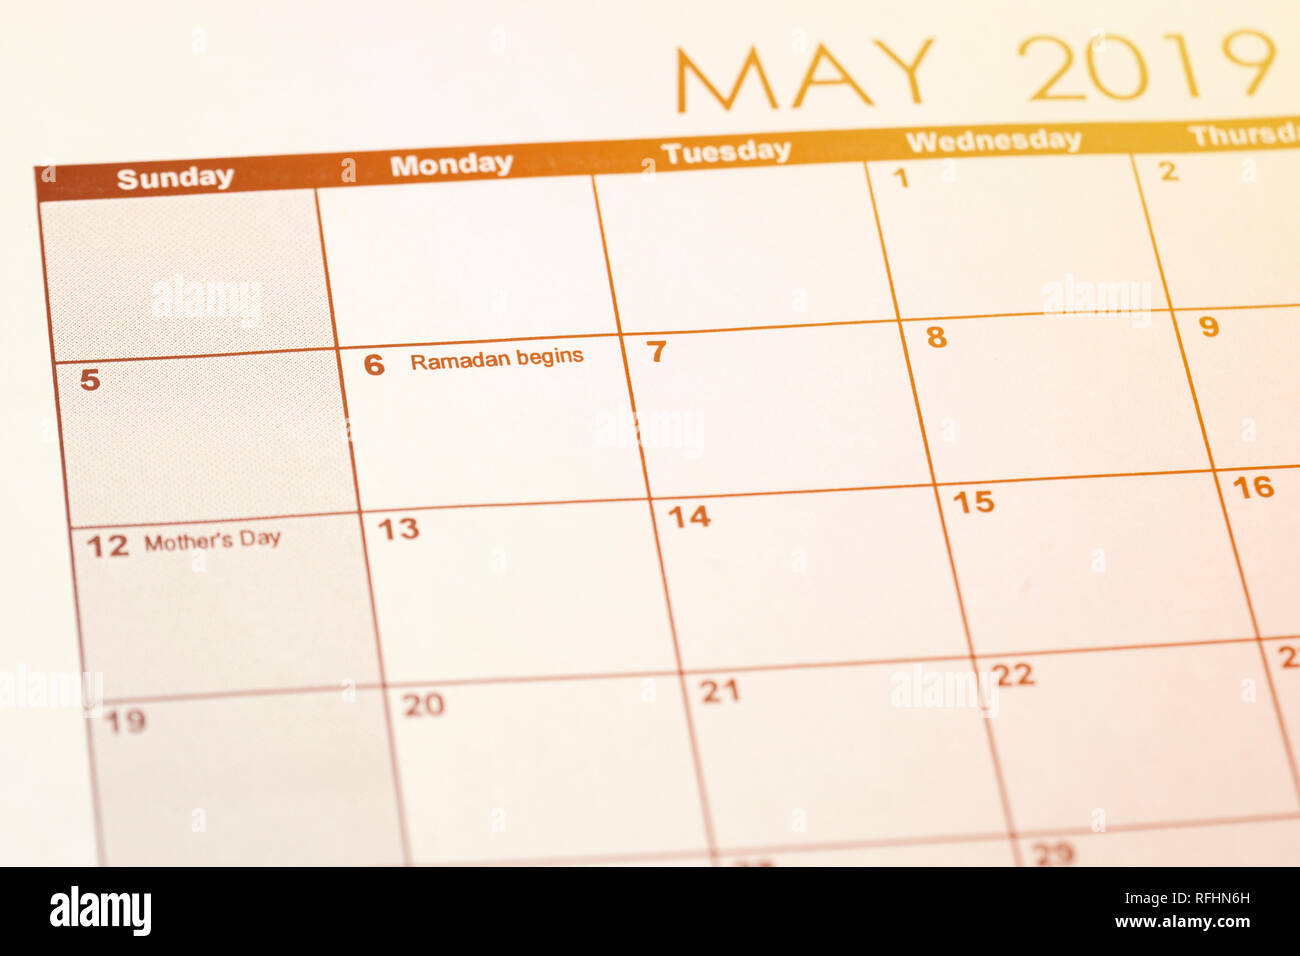 Calendar of May month 2019 - The date of beginning of